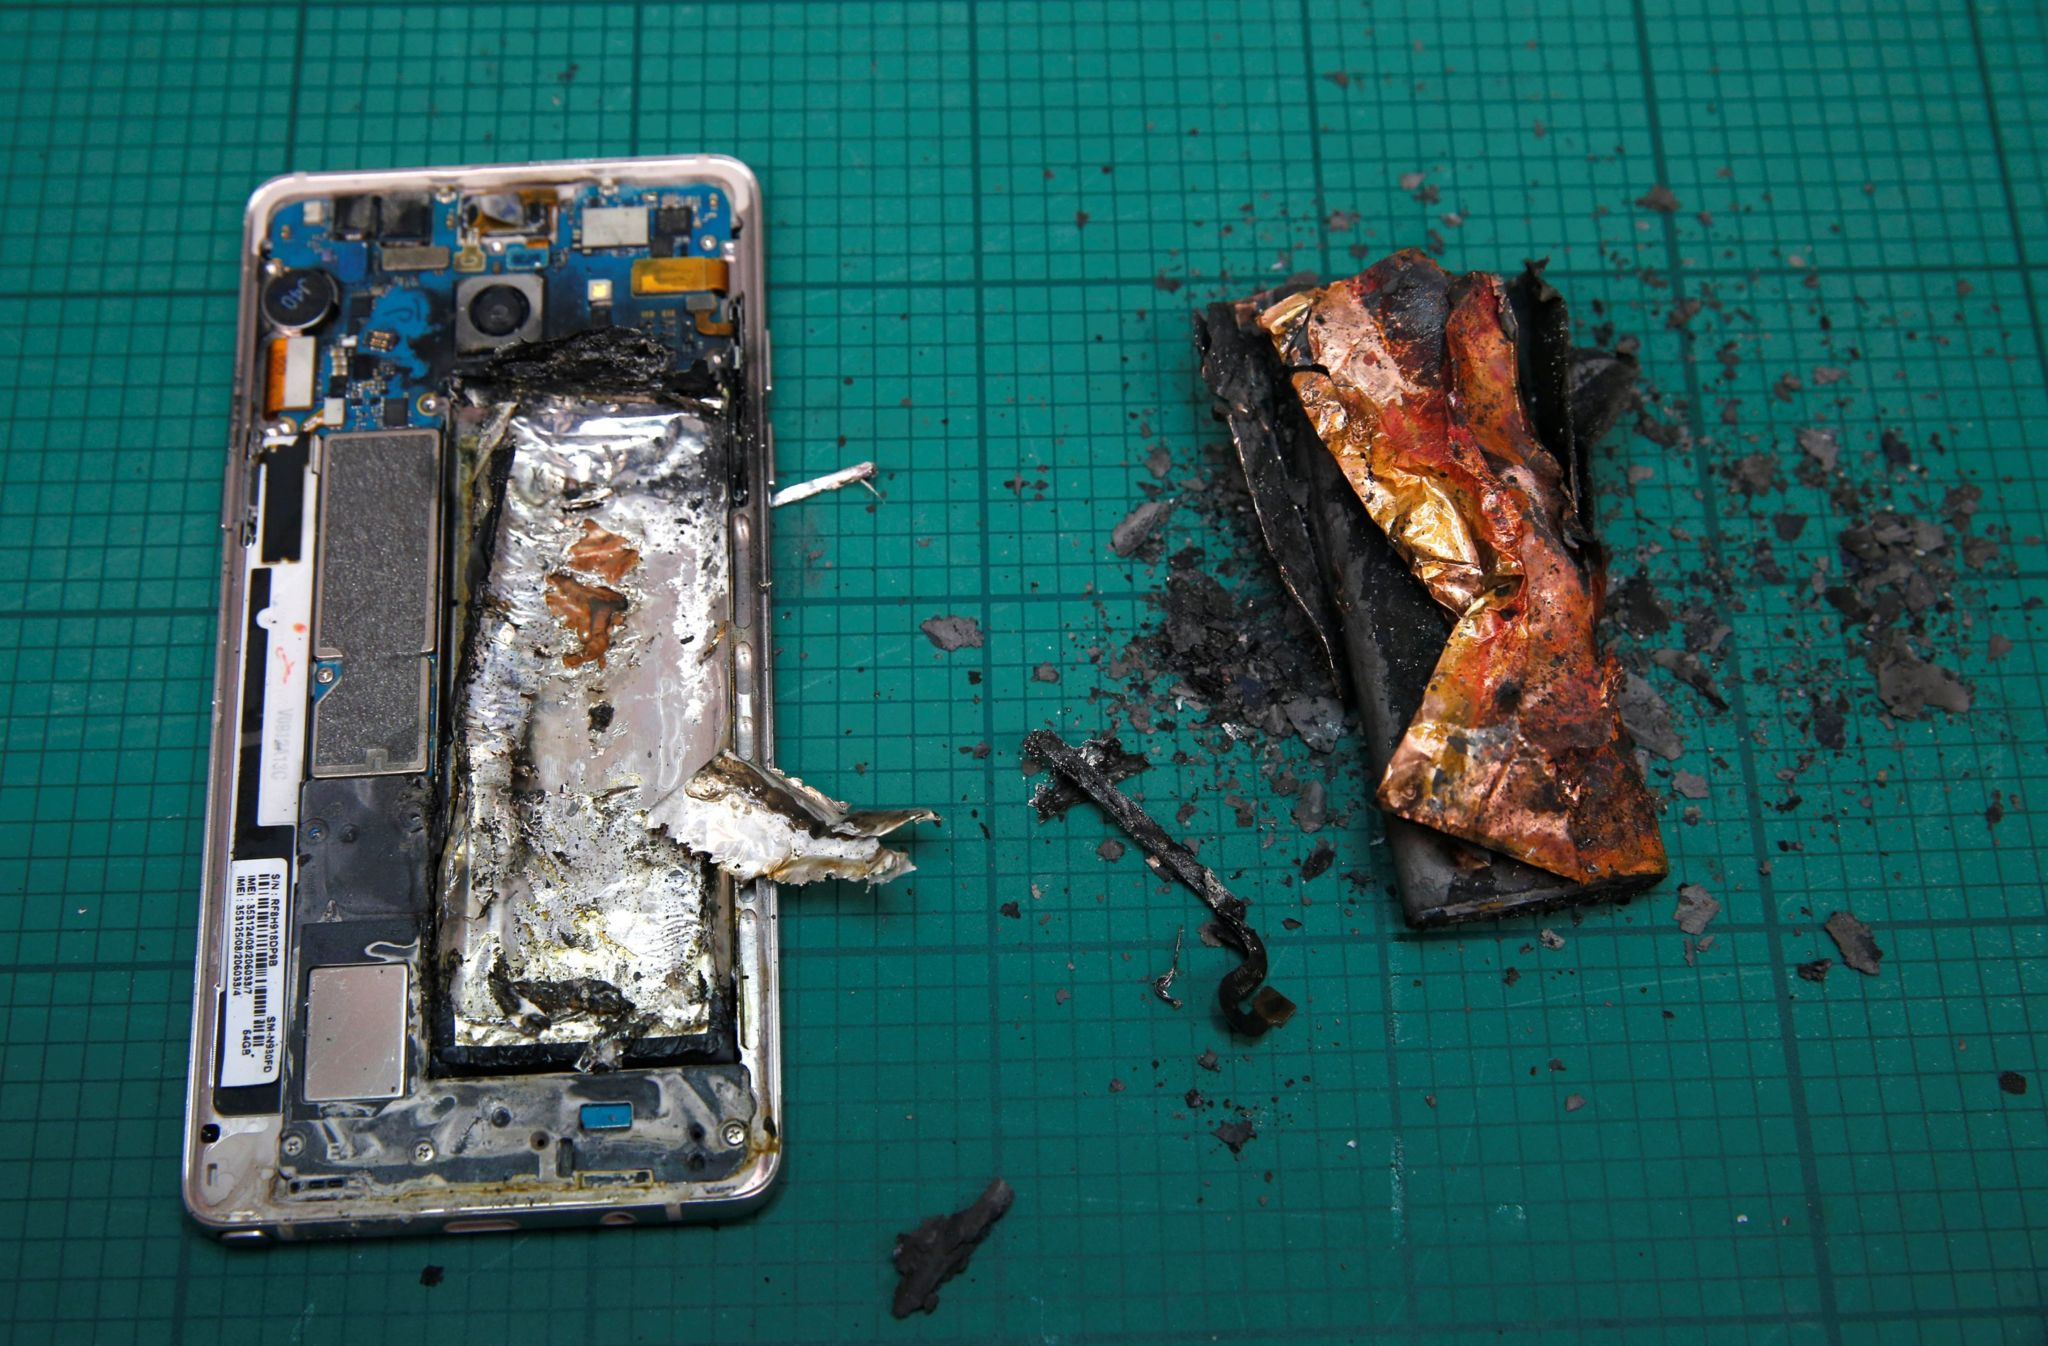 A Samsung Note 7 handset is pictured next to its charred battery after catching fire during a test at the Applied Energy Hub battery laboratory in Singapore 5 October 2016